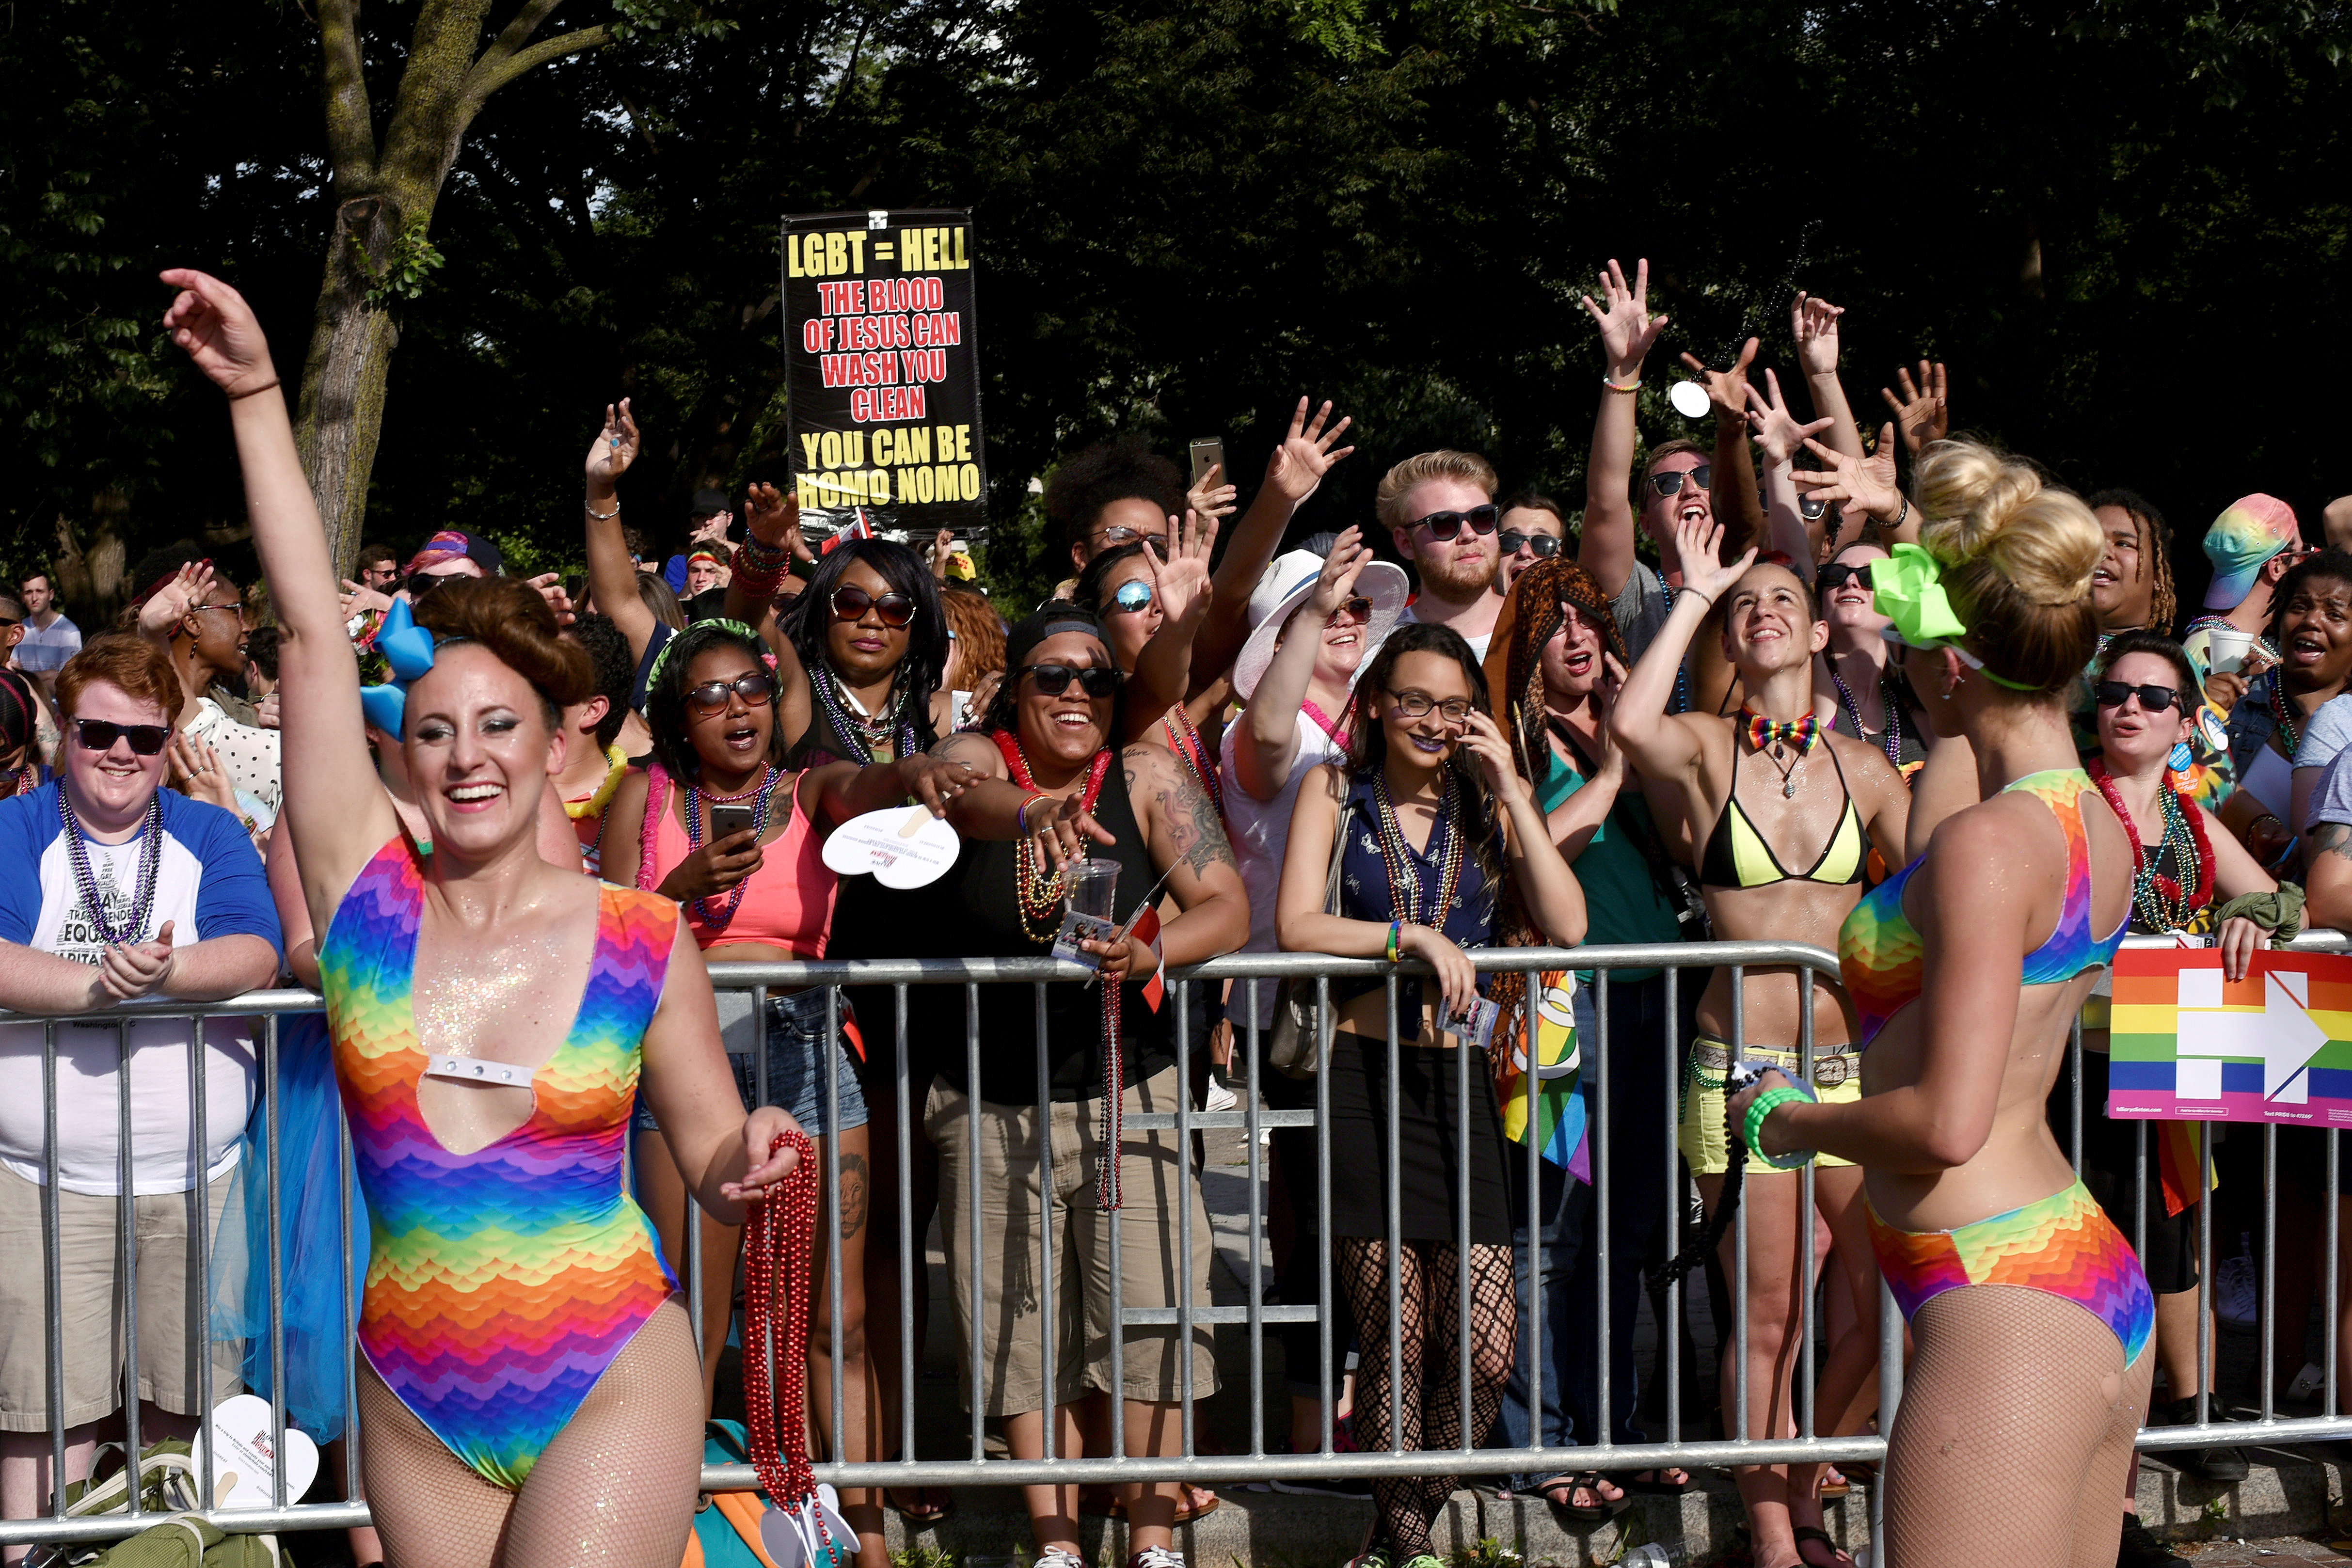 A religious group holds up a sign in protest during the DC Capital Pride parade in the Dupont Circle neighborhood in Washington, June 11, 2016.